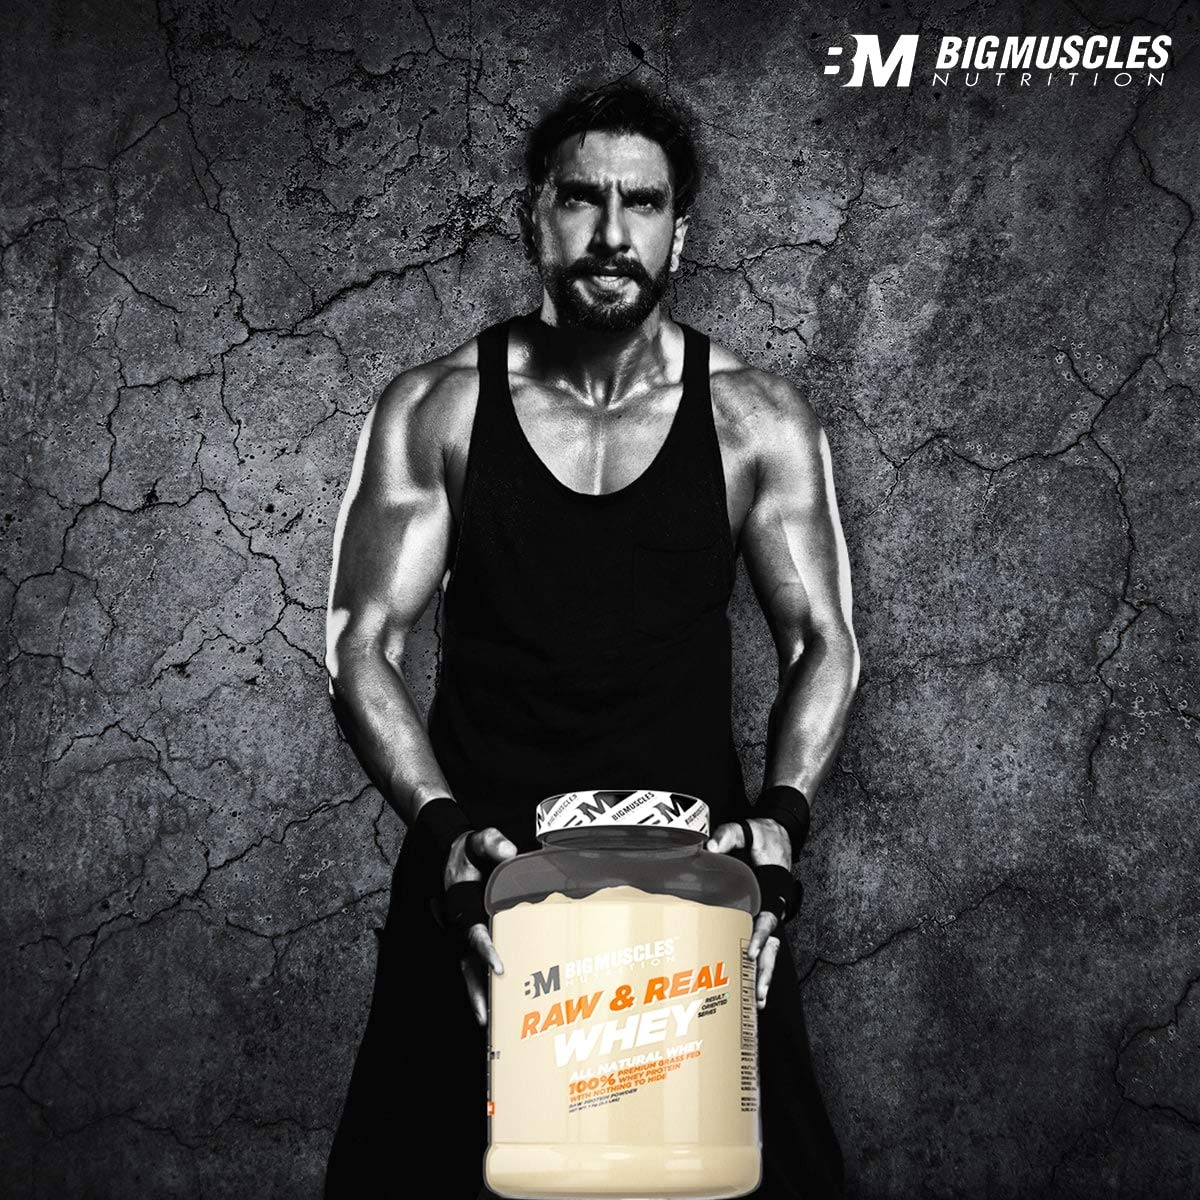 ae68834a Buy Bigmuscles Nutrition Raw & Real Whey Protein 4.4 lbs (Unflavoured)  Online at Low Prices in India - Amazon.in